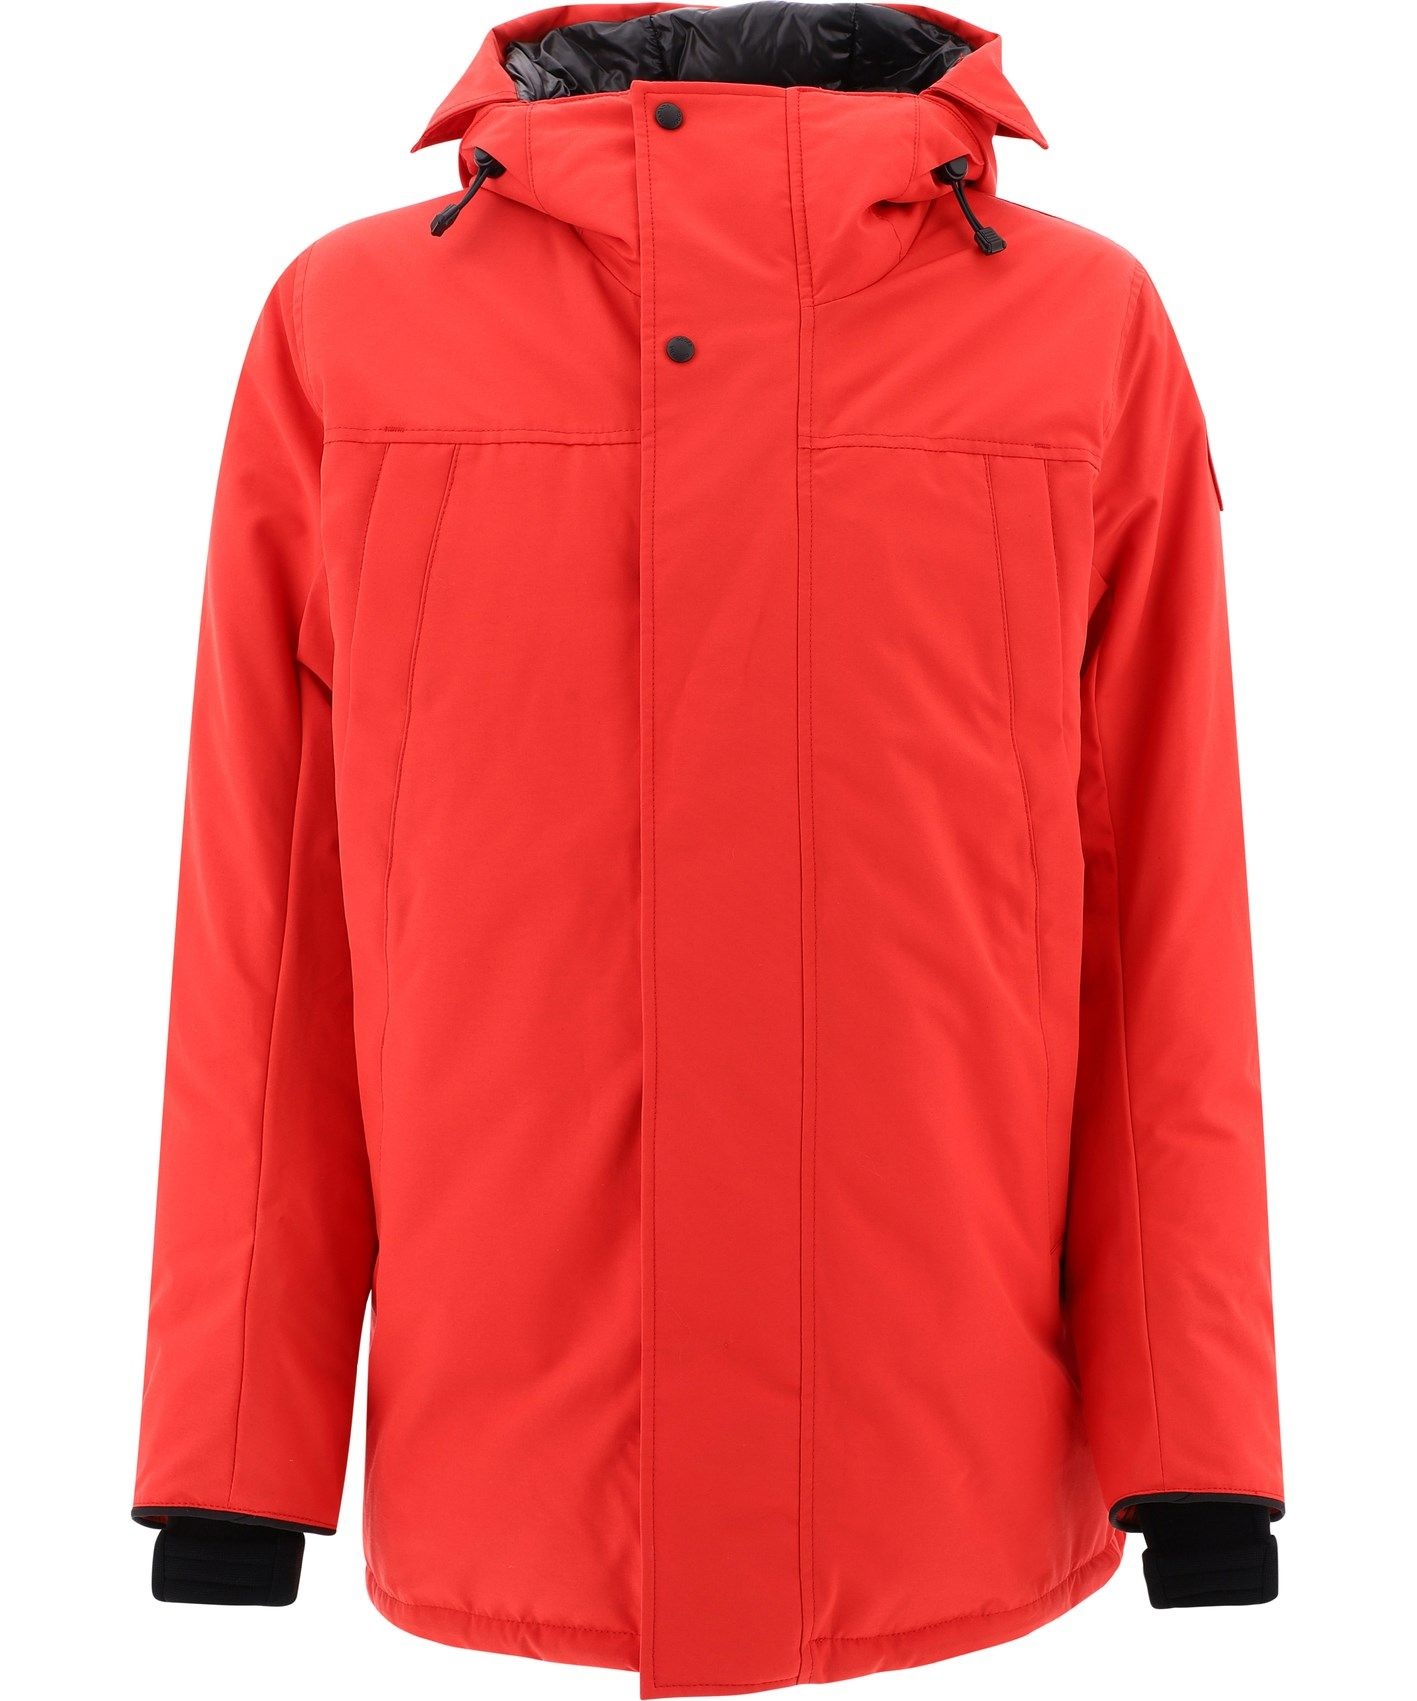 Canada Goose Cottons CANADA GOOSE MEN'S 3400M11 RED POLYESTER OUTERWEAR JACKET